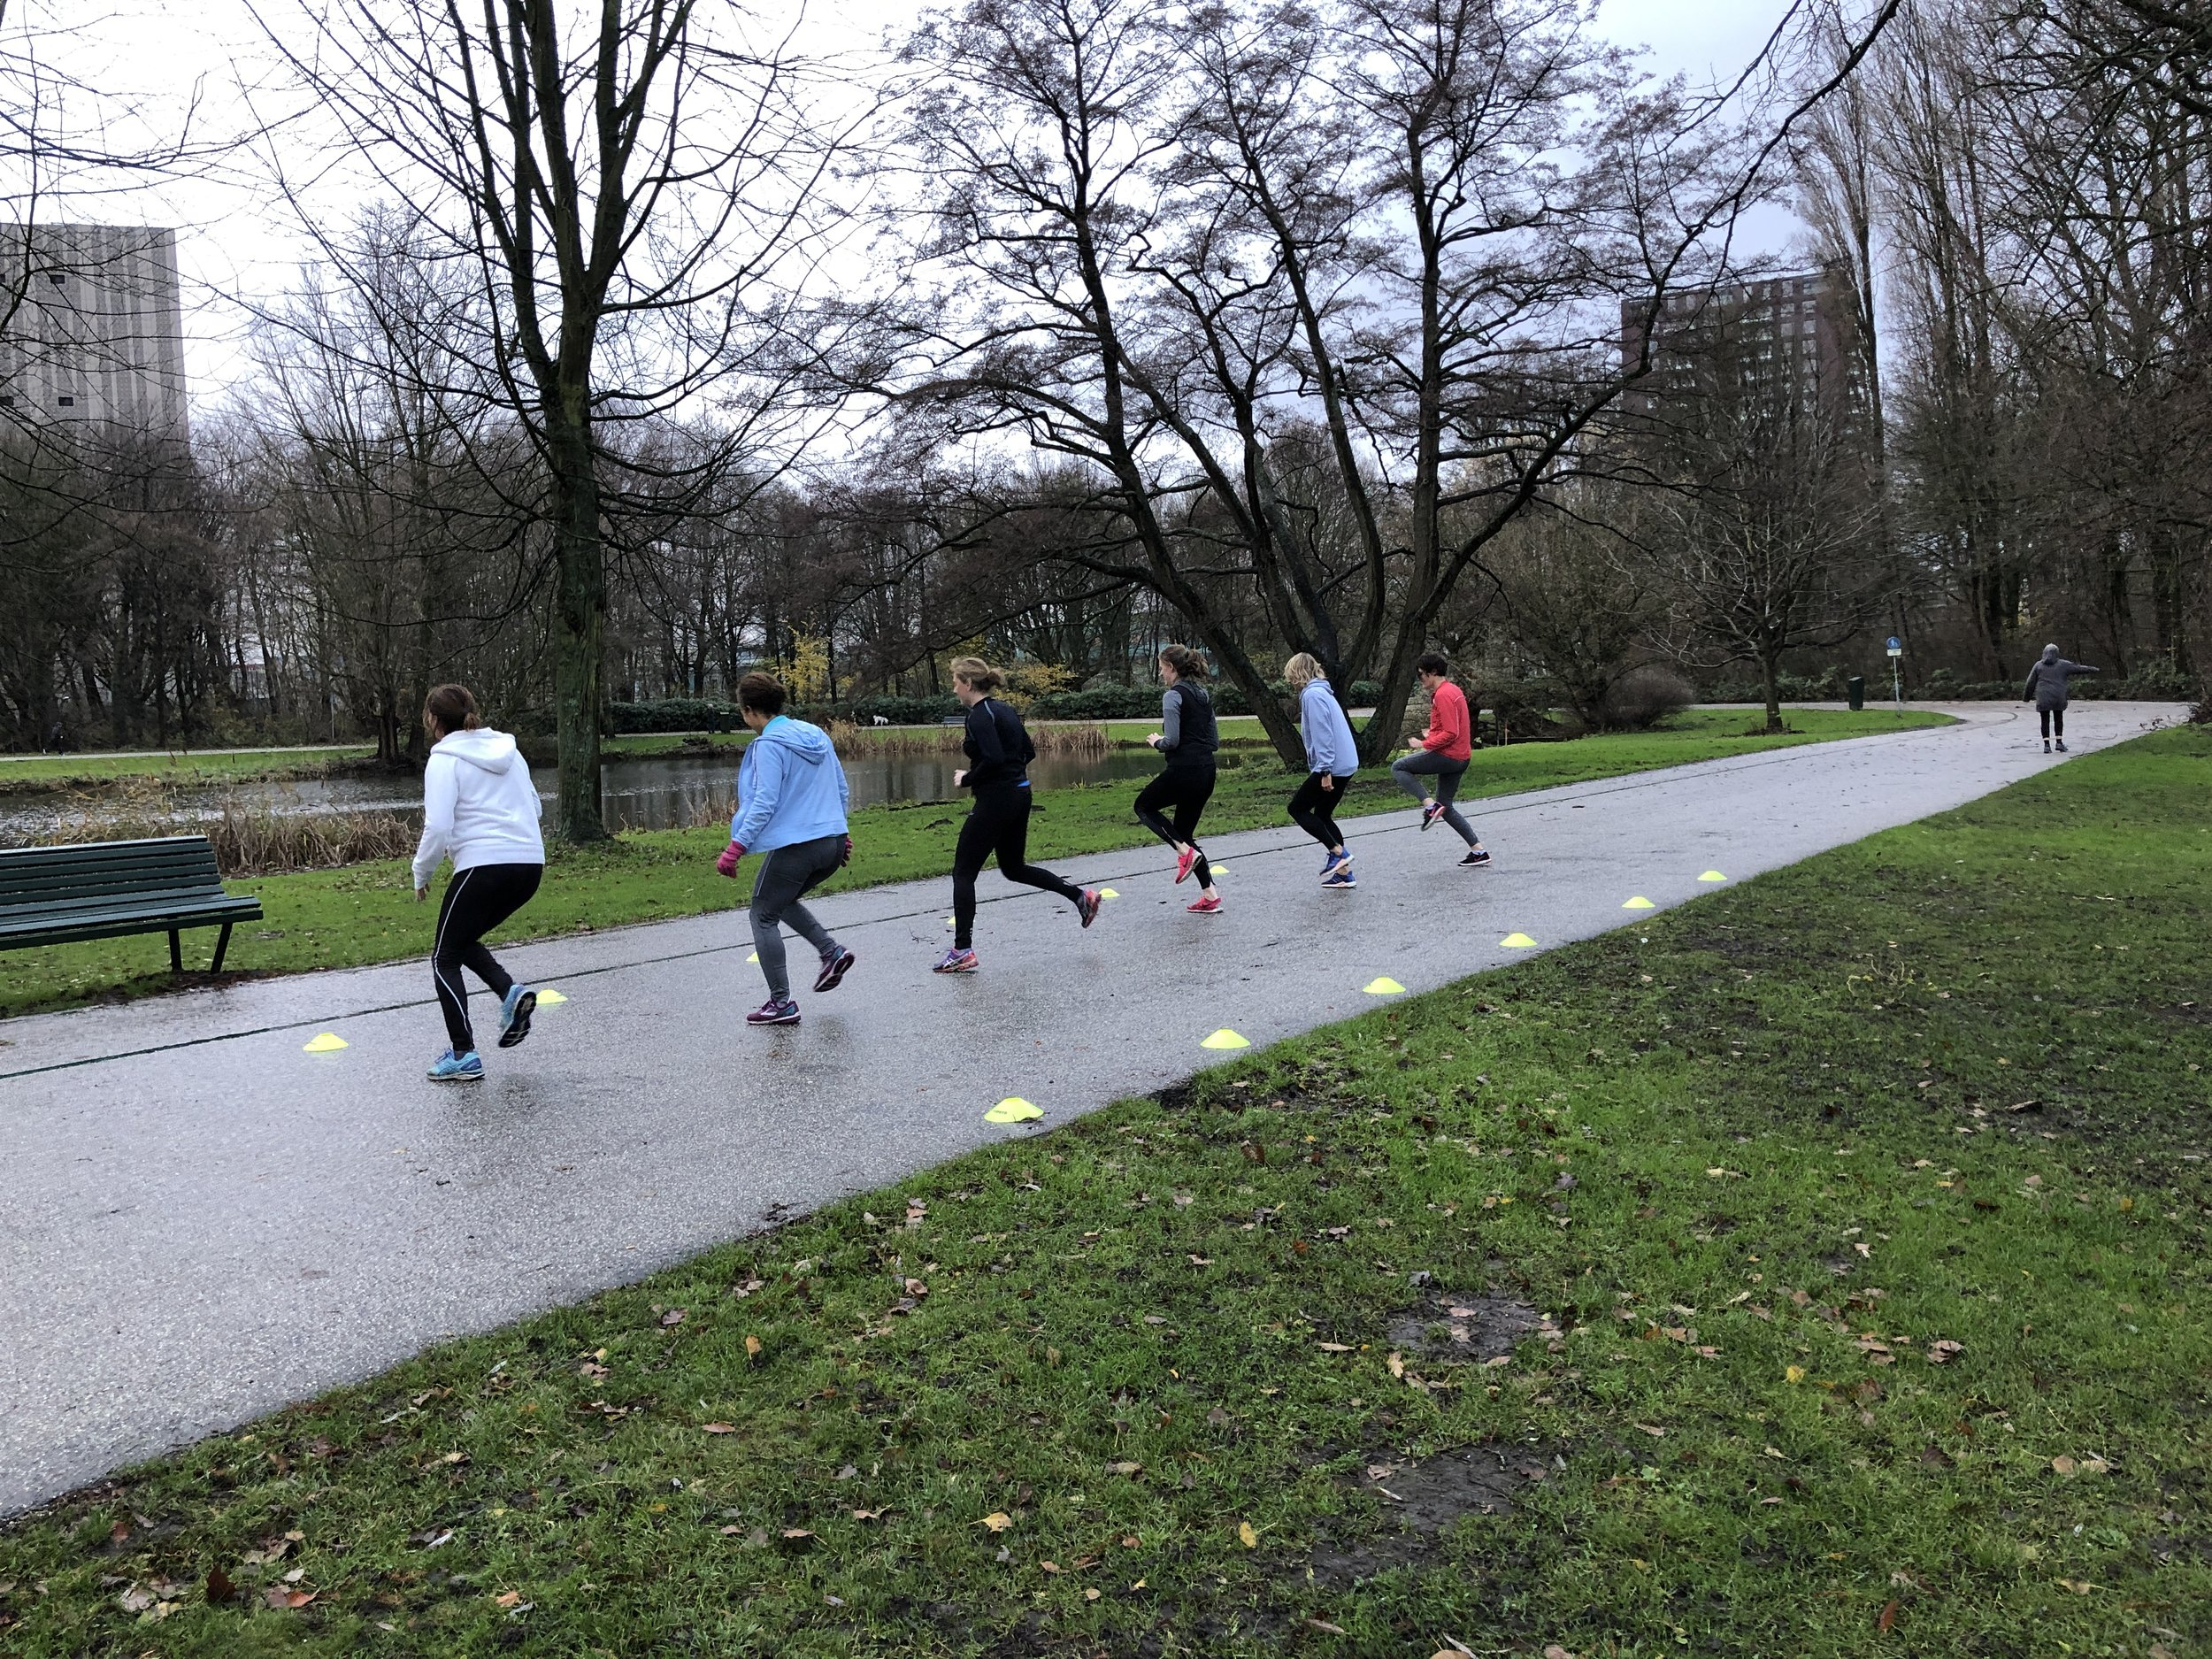 Flevopark - Saturdays 9:00am - 10:00amAdvanced Training Only. FULL.Saturdays 10:00am - 11:00amClass will start once there are 5 or more participants. Send an email to be added to waiting list.